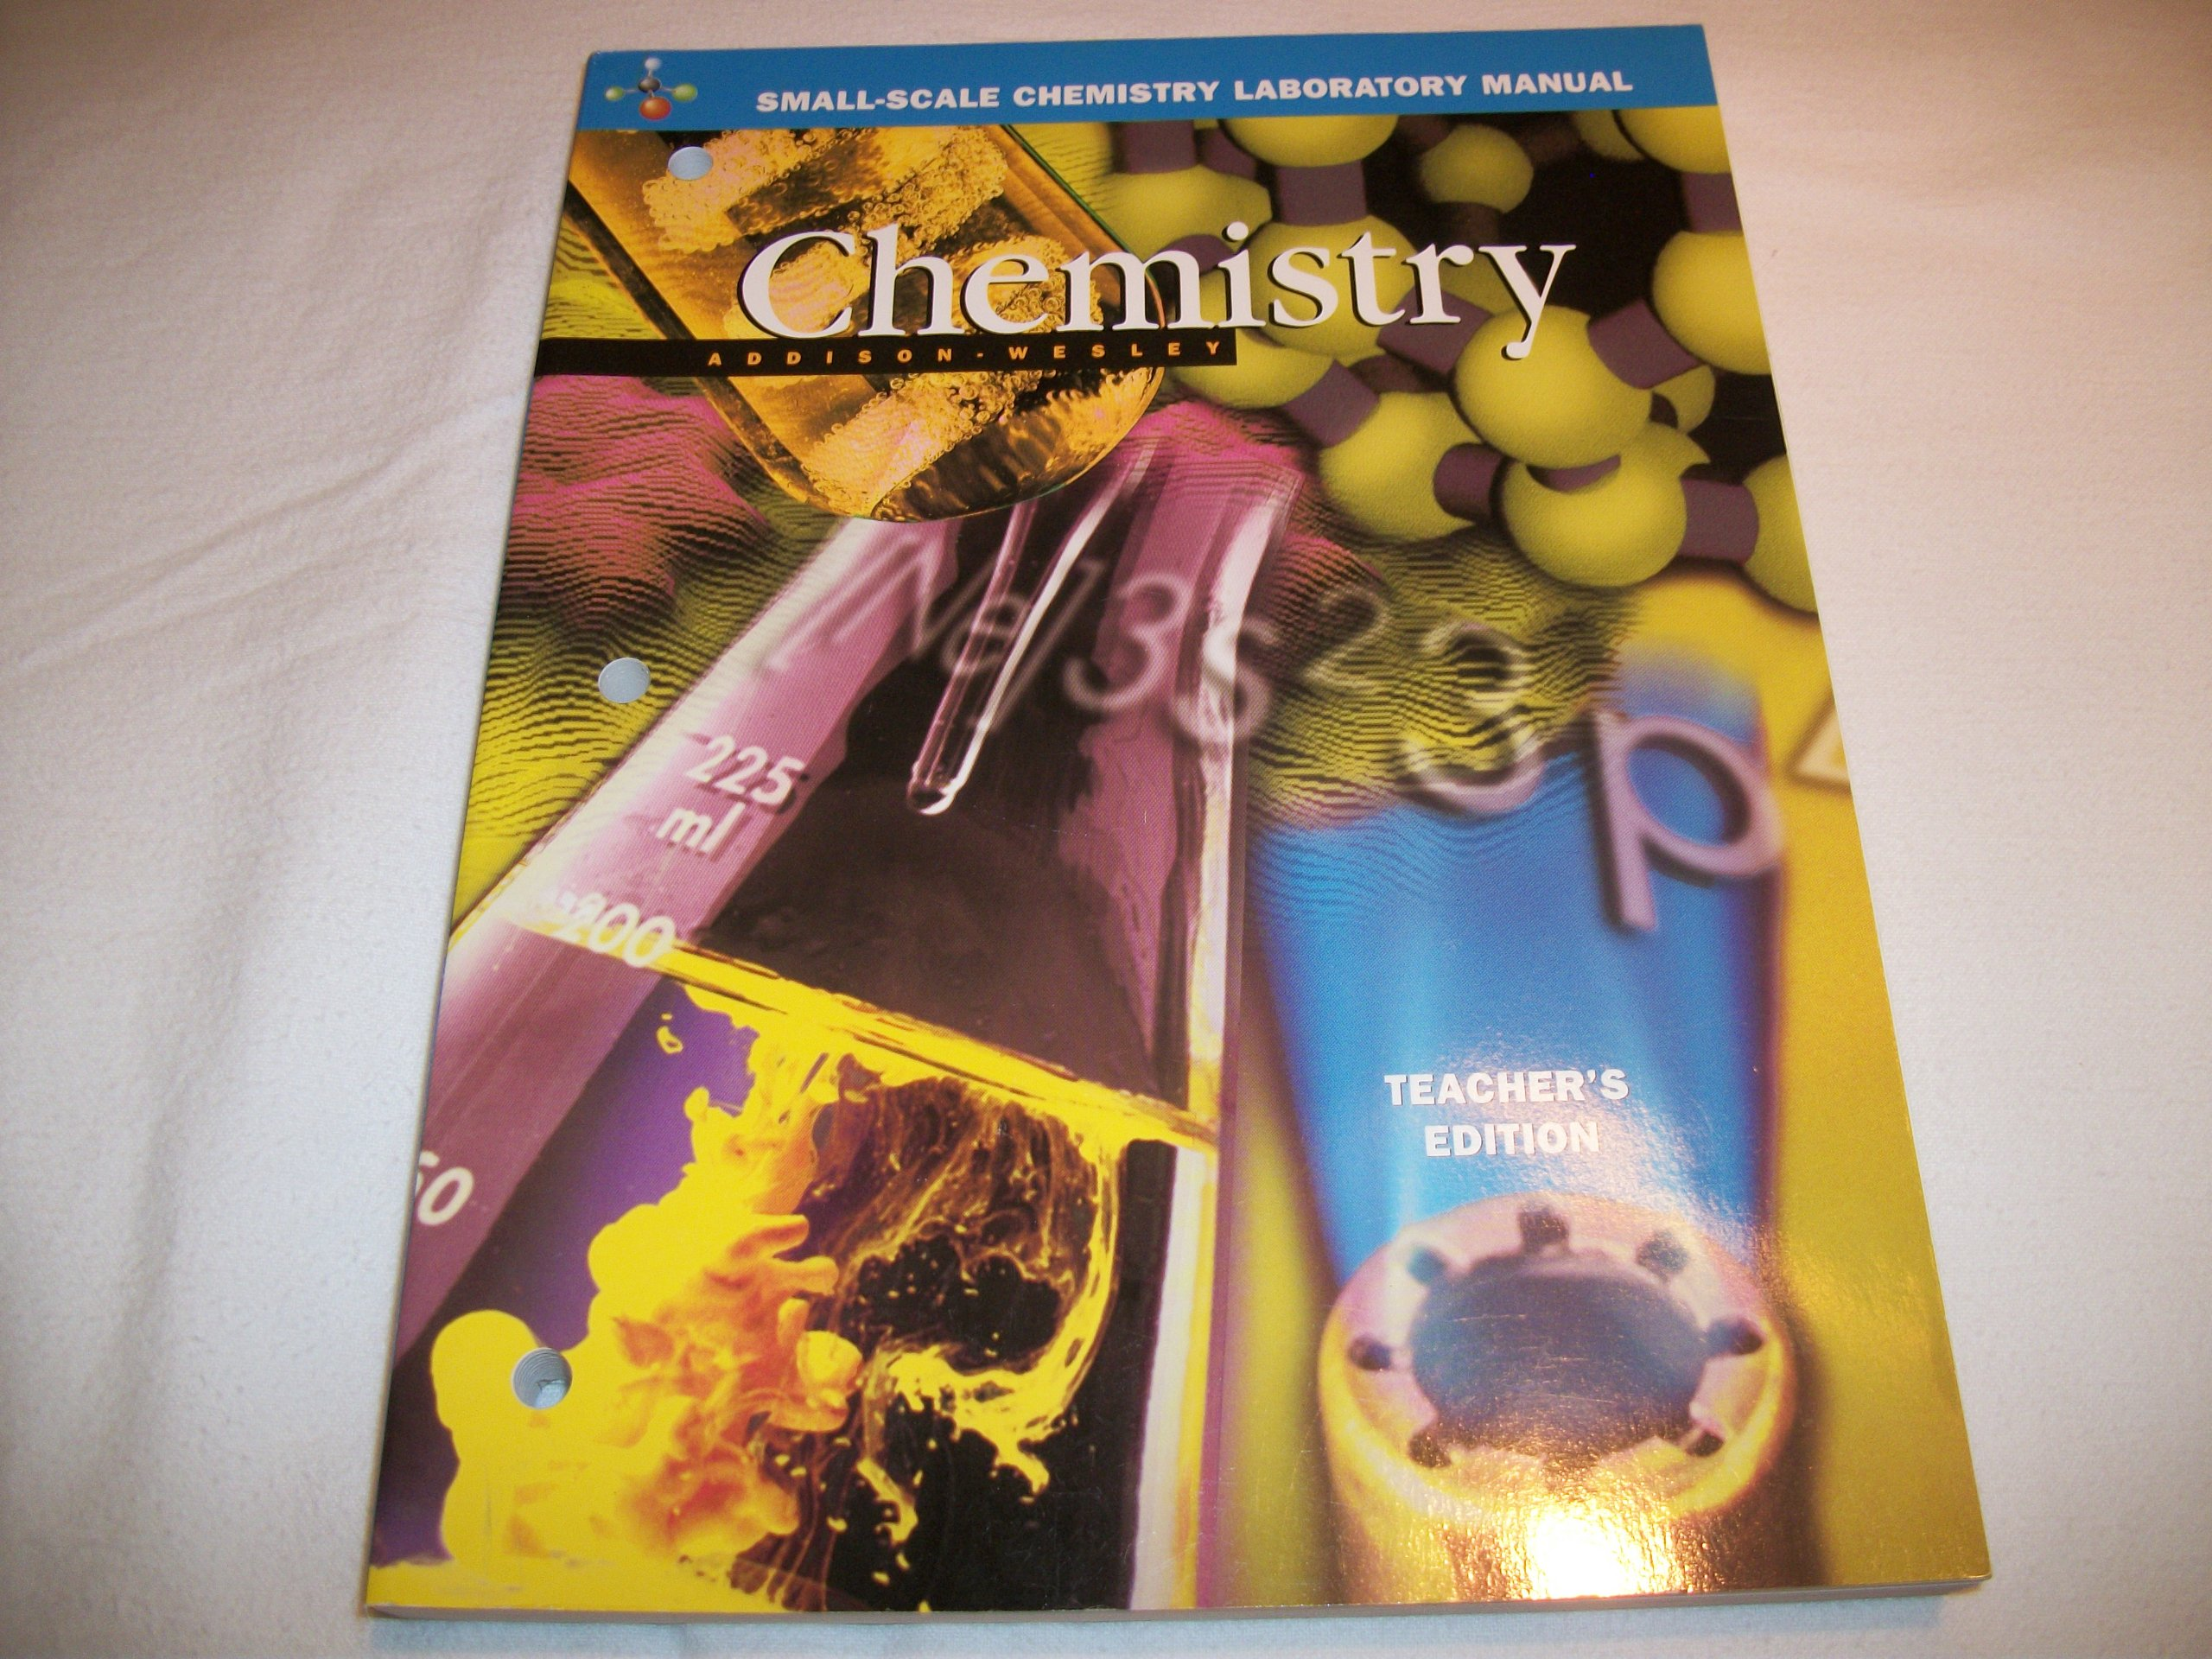 Chemistry small scale chemistry laboratory manual edward l chemistry small scale chemistry laboratory manual edward l waterman 9780130548627 amazon books fandeluxe Images